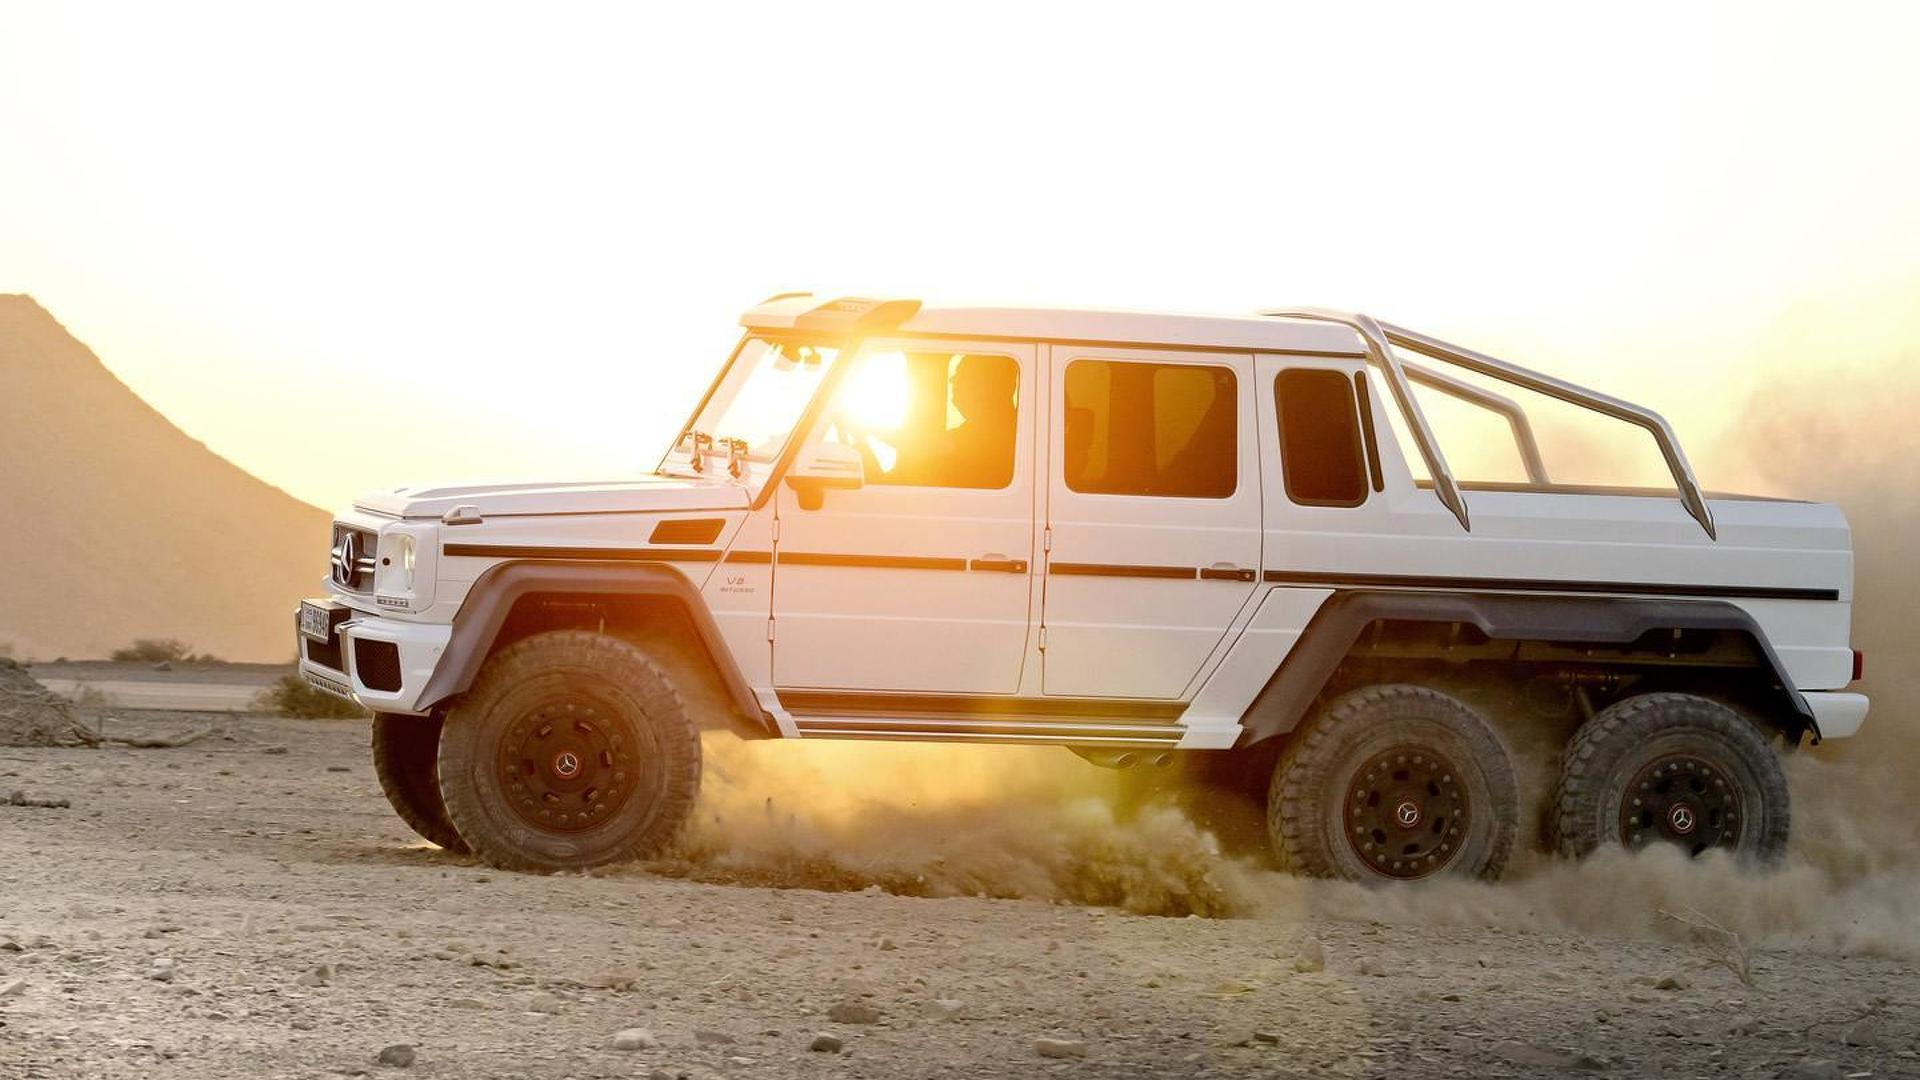 2015 Mercedes-Benz G63 AMG 6x6 priced from 456,900 EUR